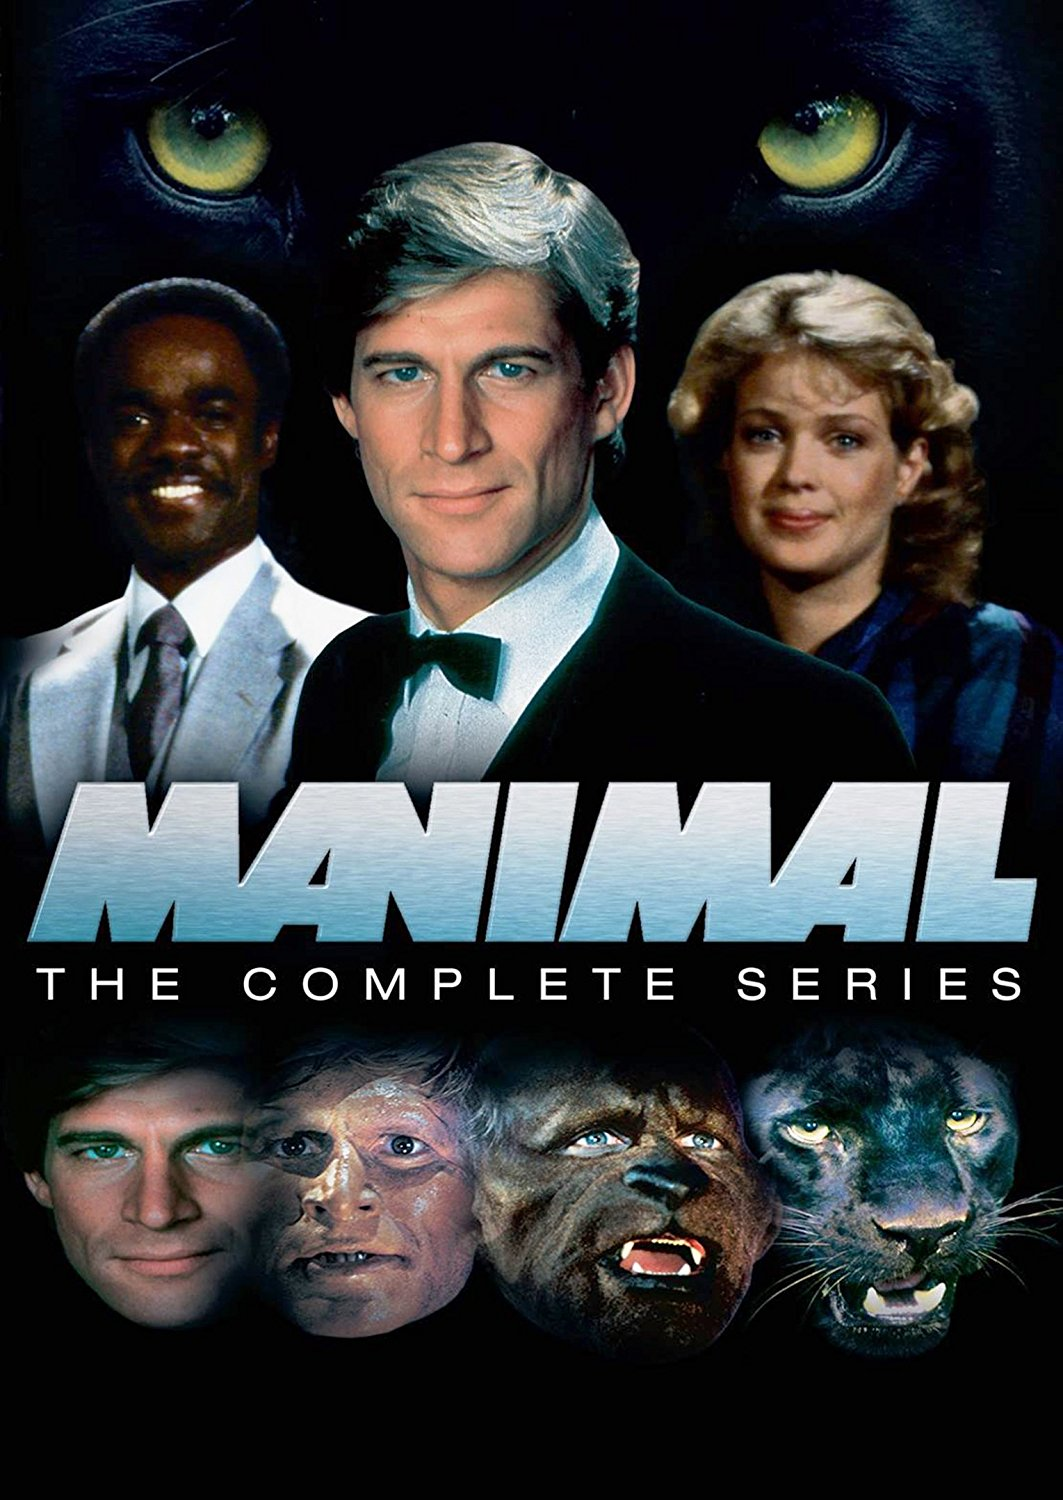 Manimal: The DVD cover.